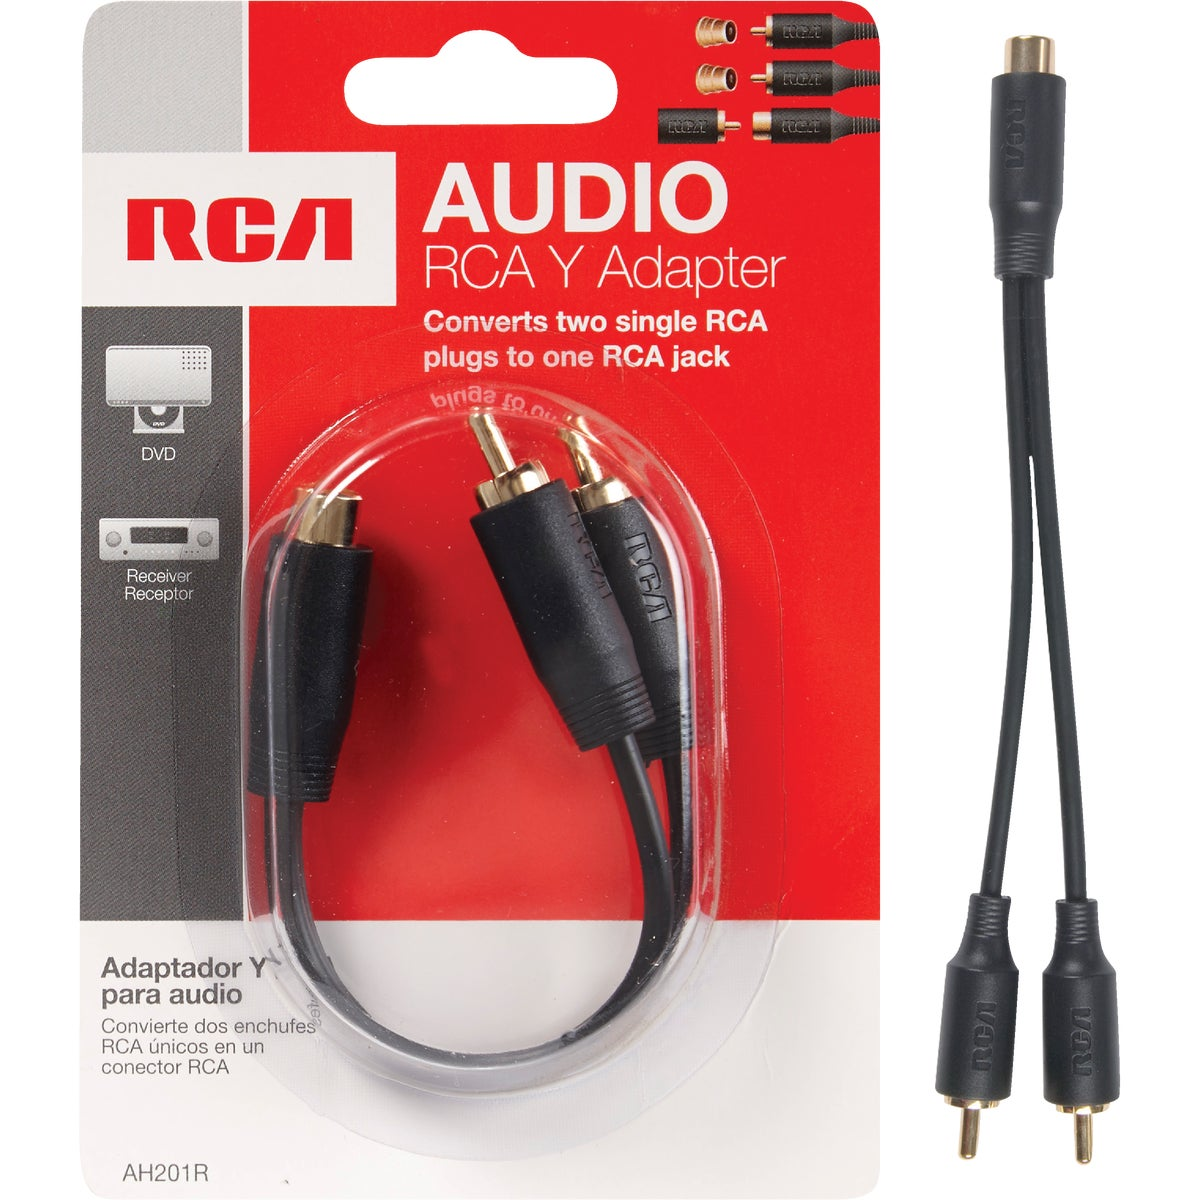 "6"" RCA Y ADAPTER - AH201R by Audiovox Accessories"